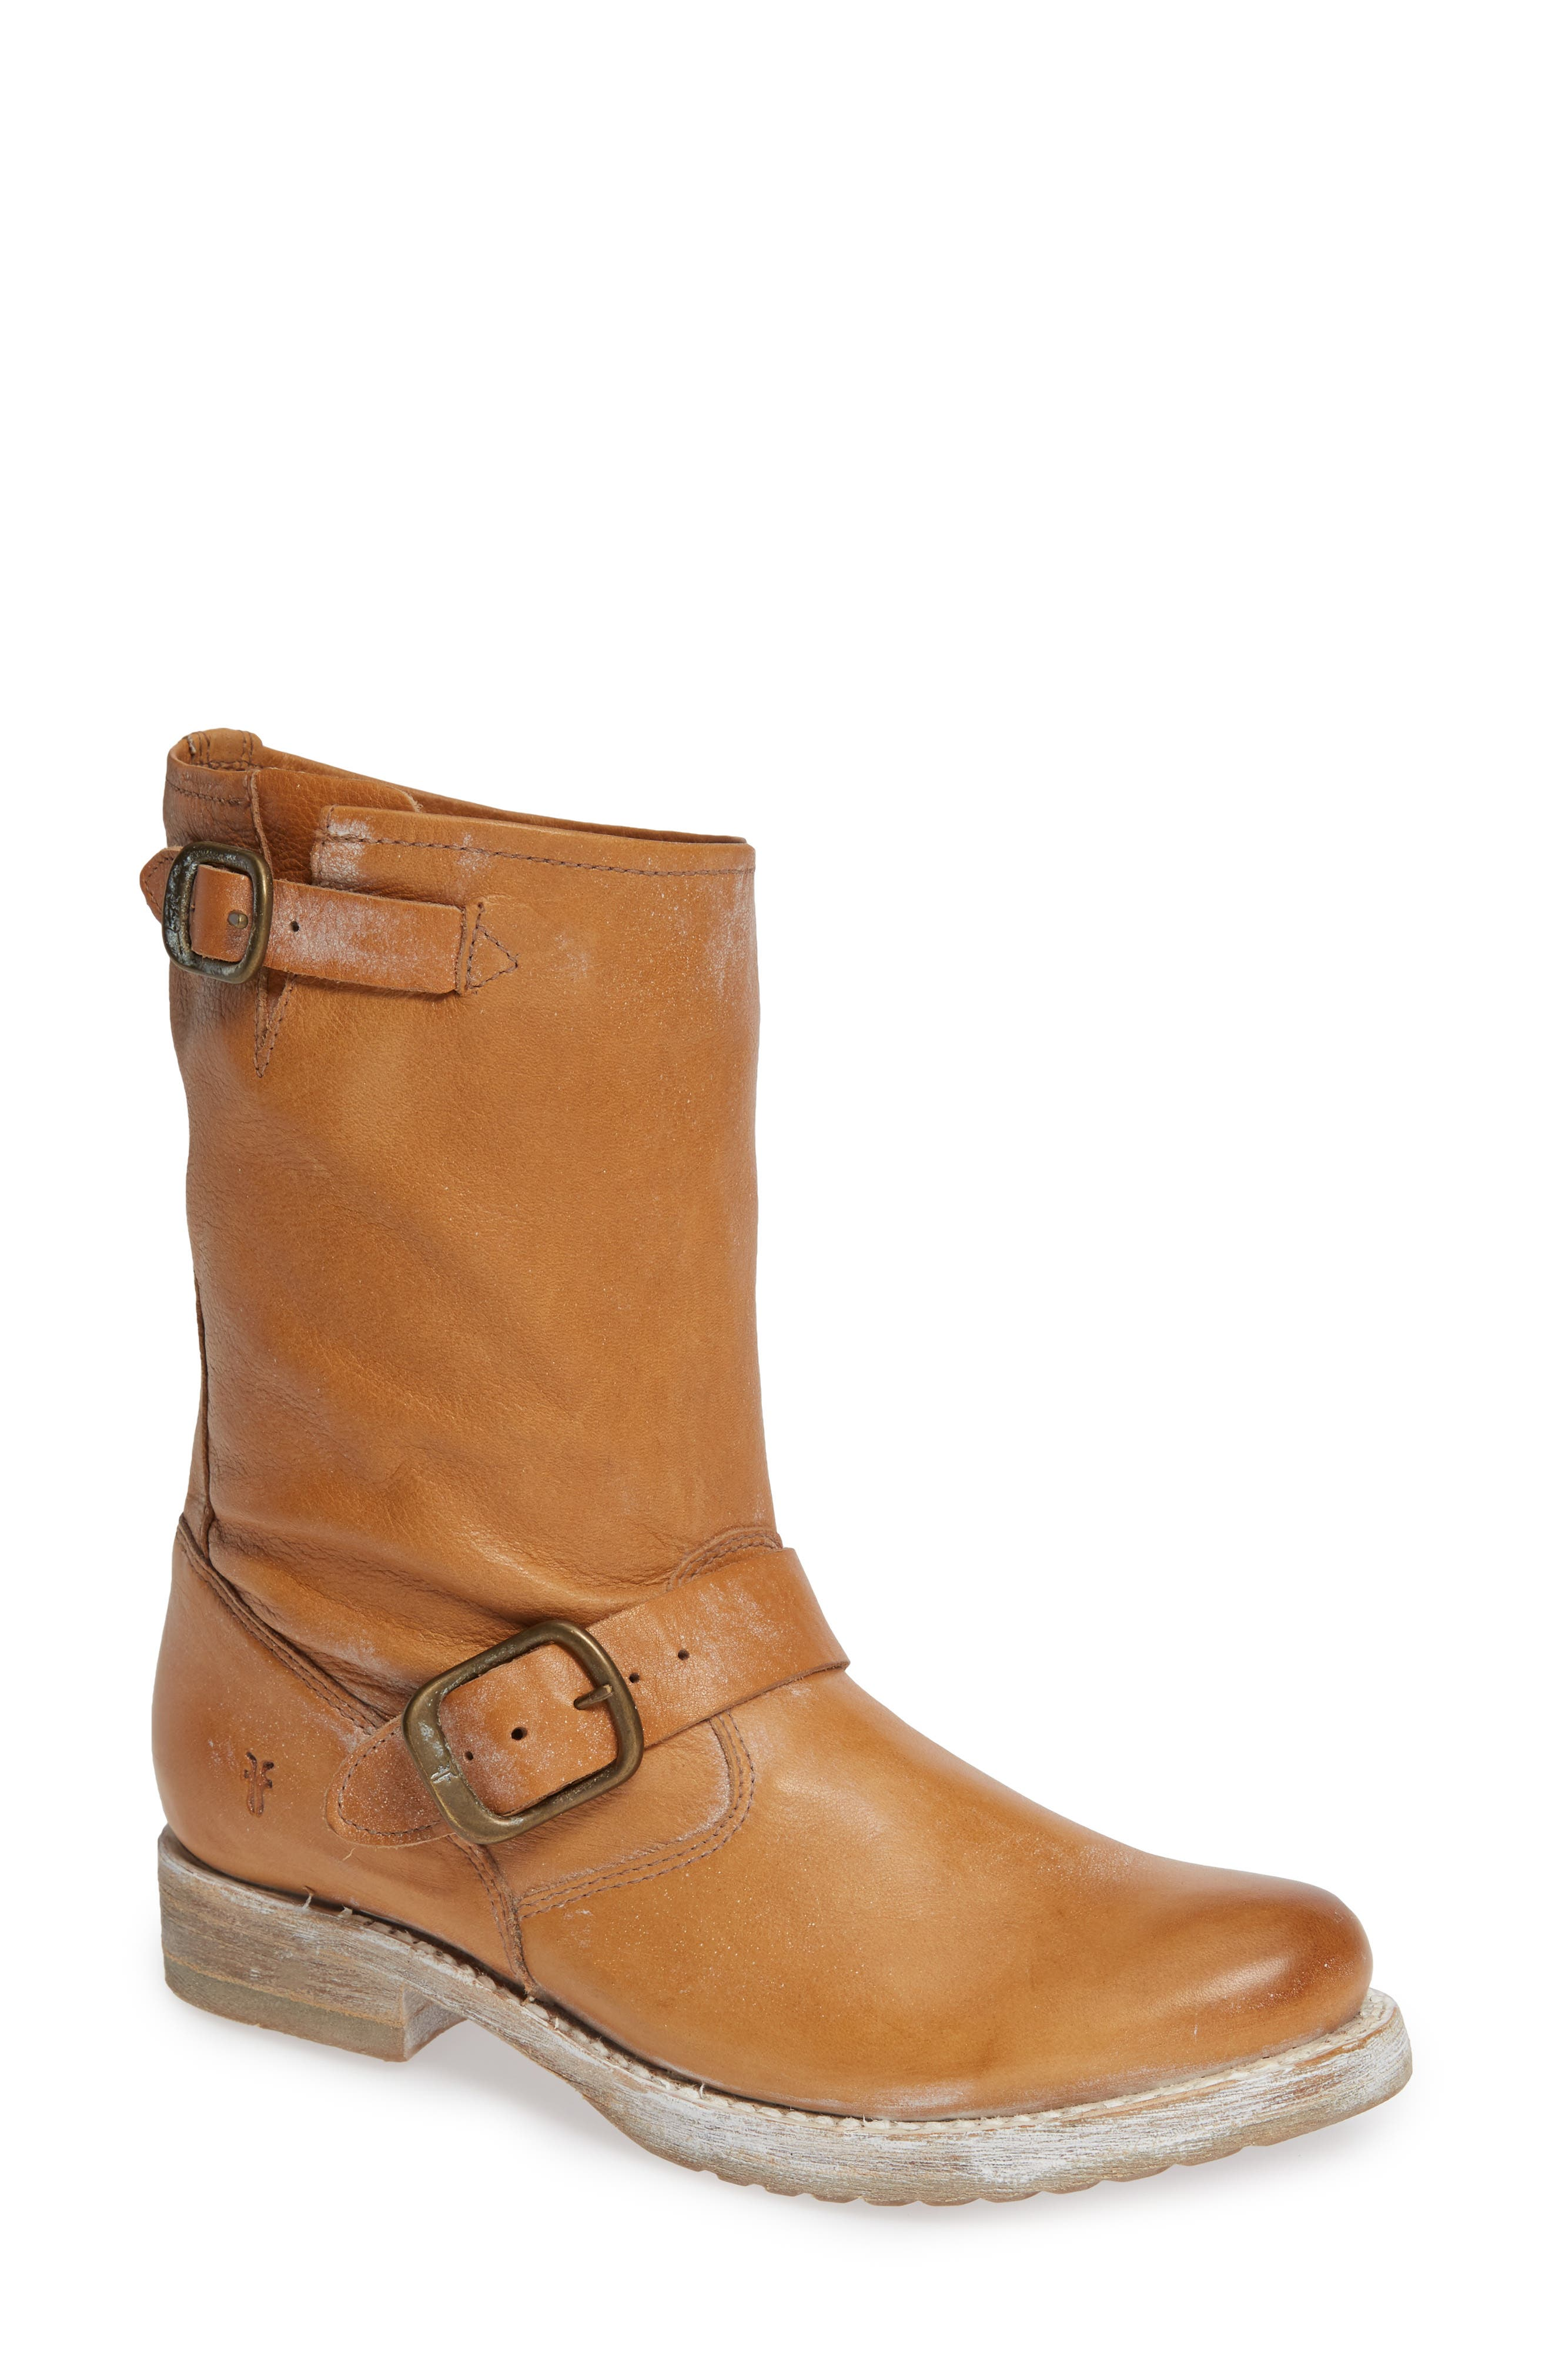 FRYE, 'Veronica Short' Slouchy Boot, Main thumbnail 1, color, TAN LEATHER